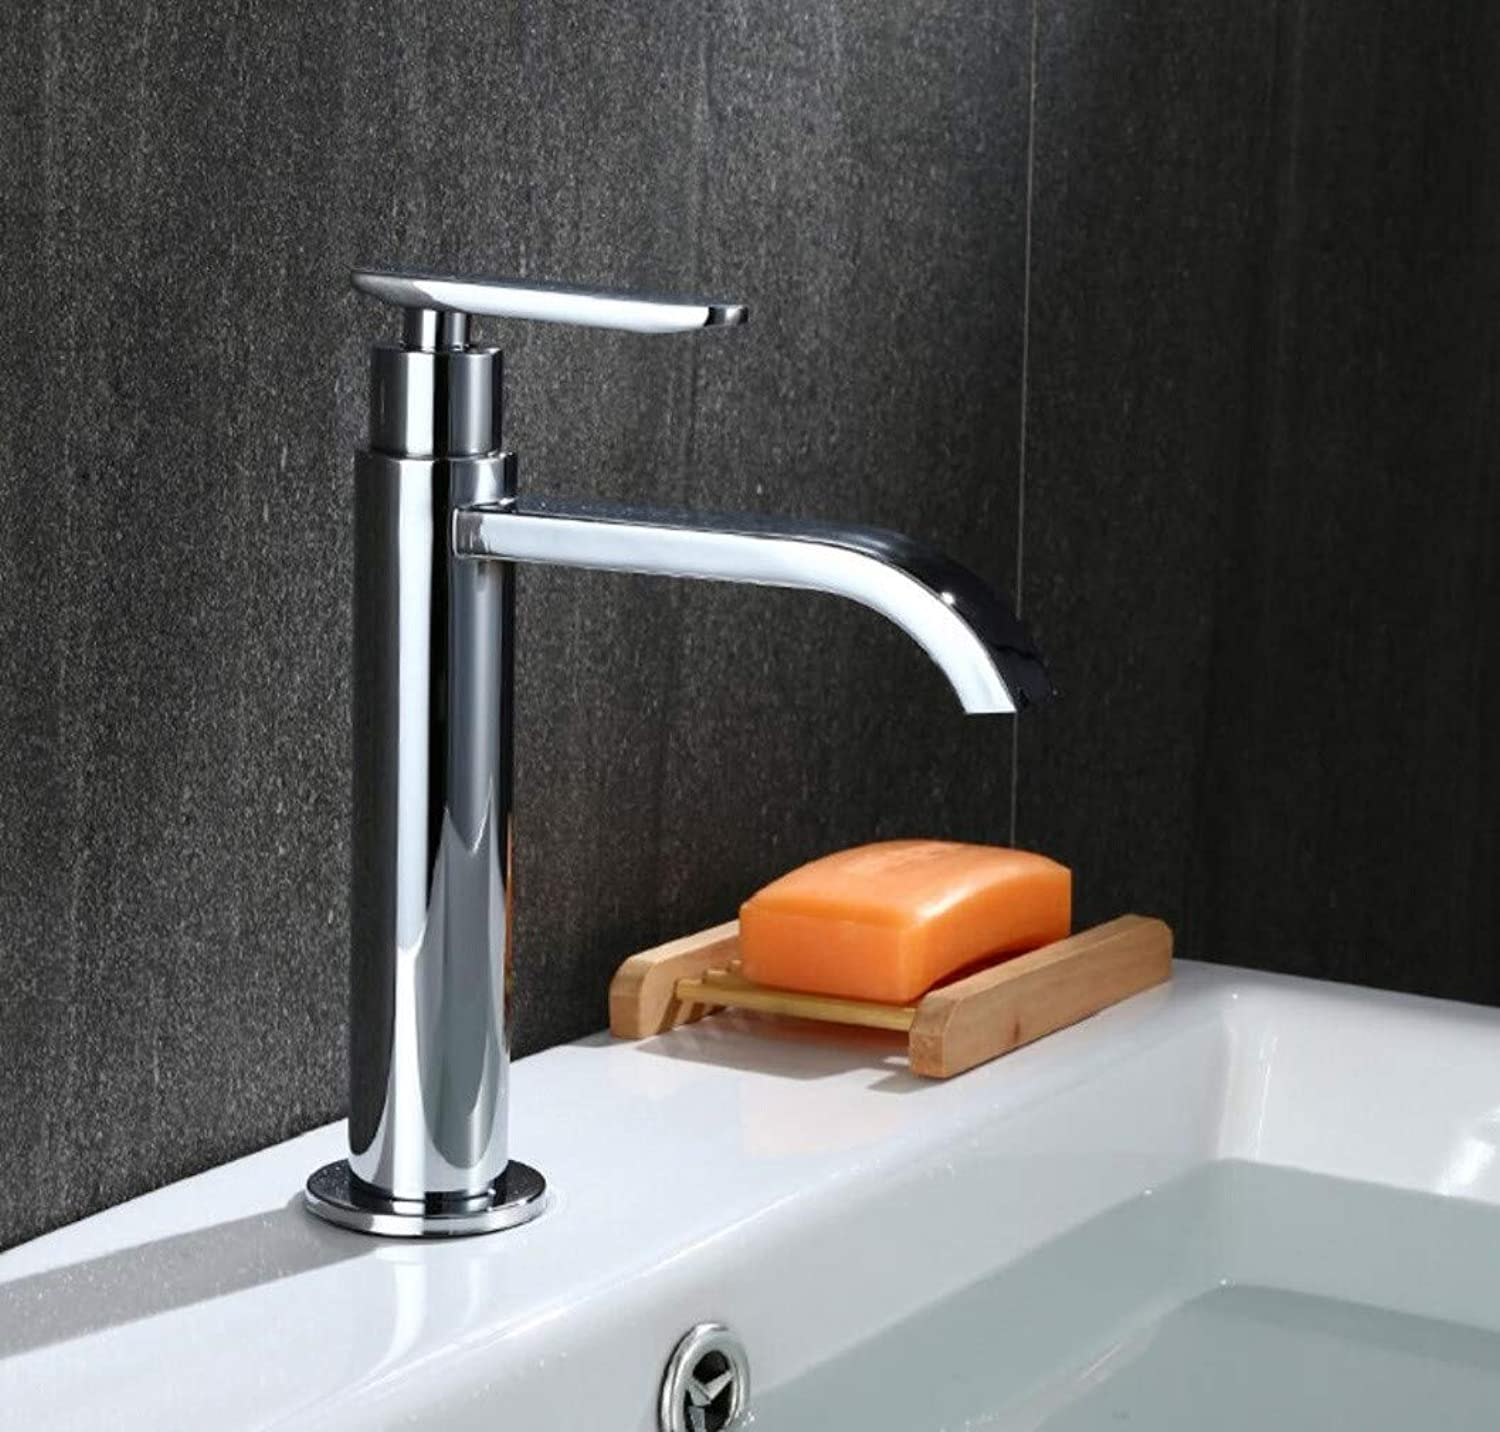 Bathroom Taps Single Cold Basin Flat Mouth Faucet Bathroom Sink Tap Basin Sink Mixer Tap